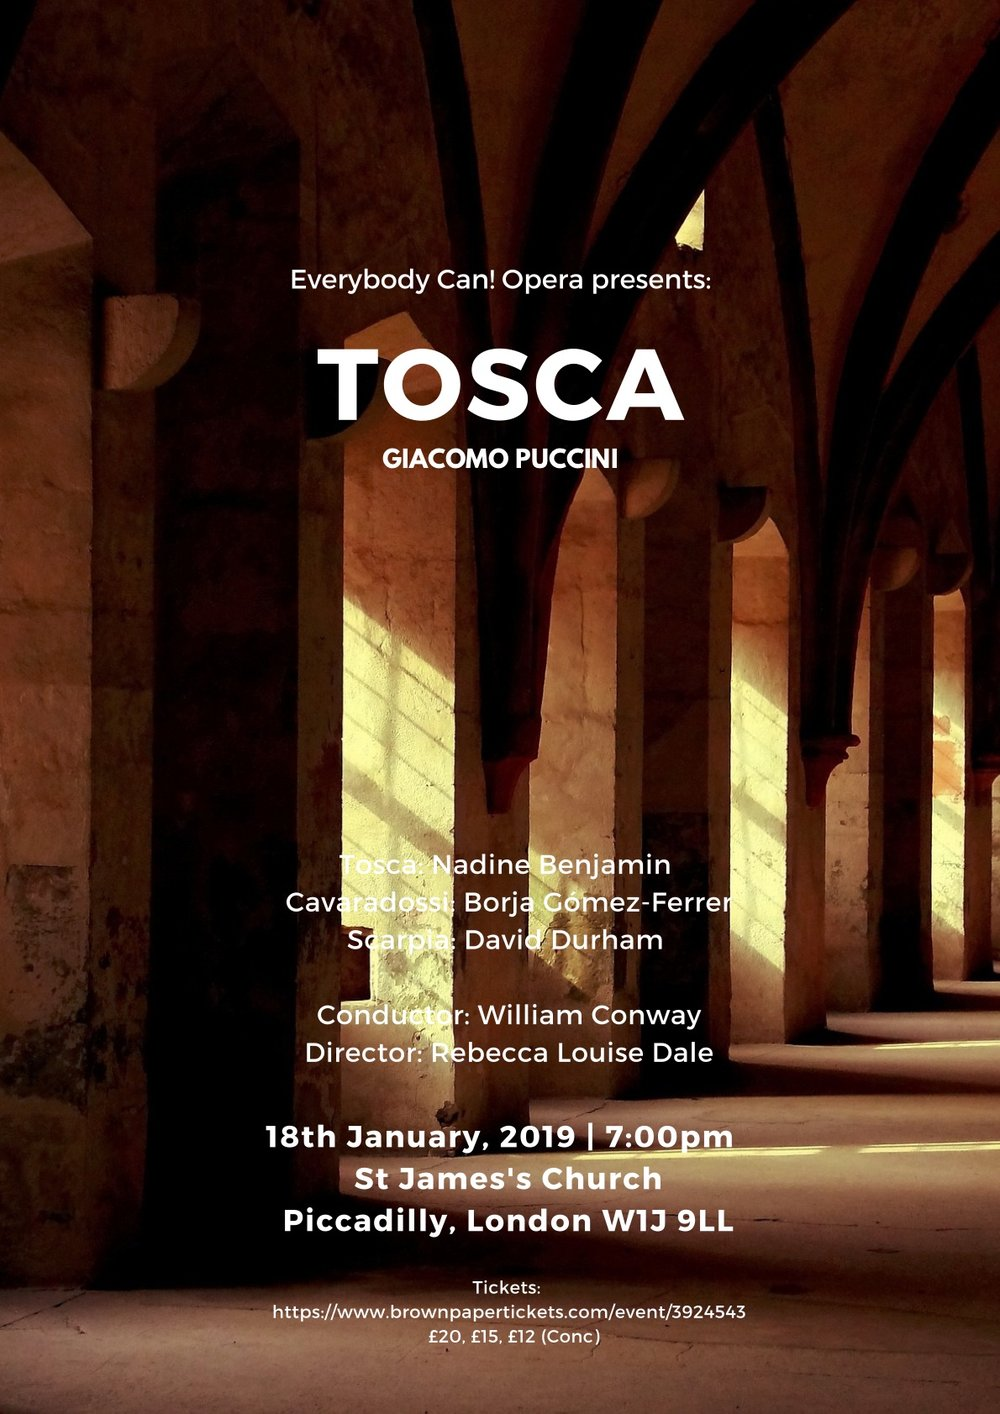 Flyer - TOSCA - Everybody Can! Opera - 18 January 2019 (1).jpg